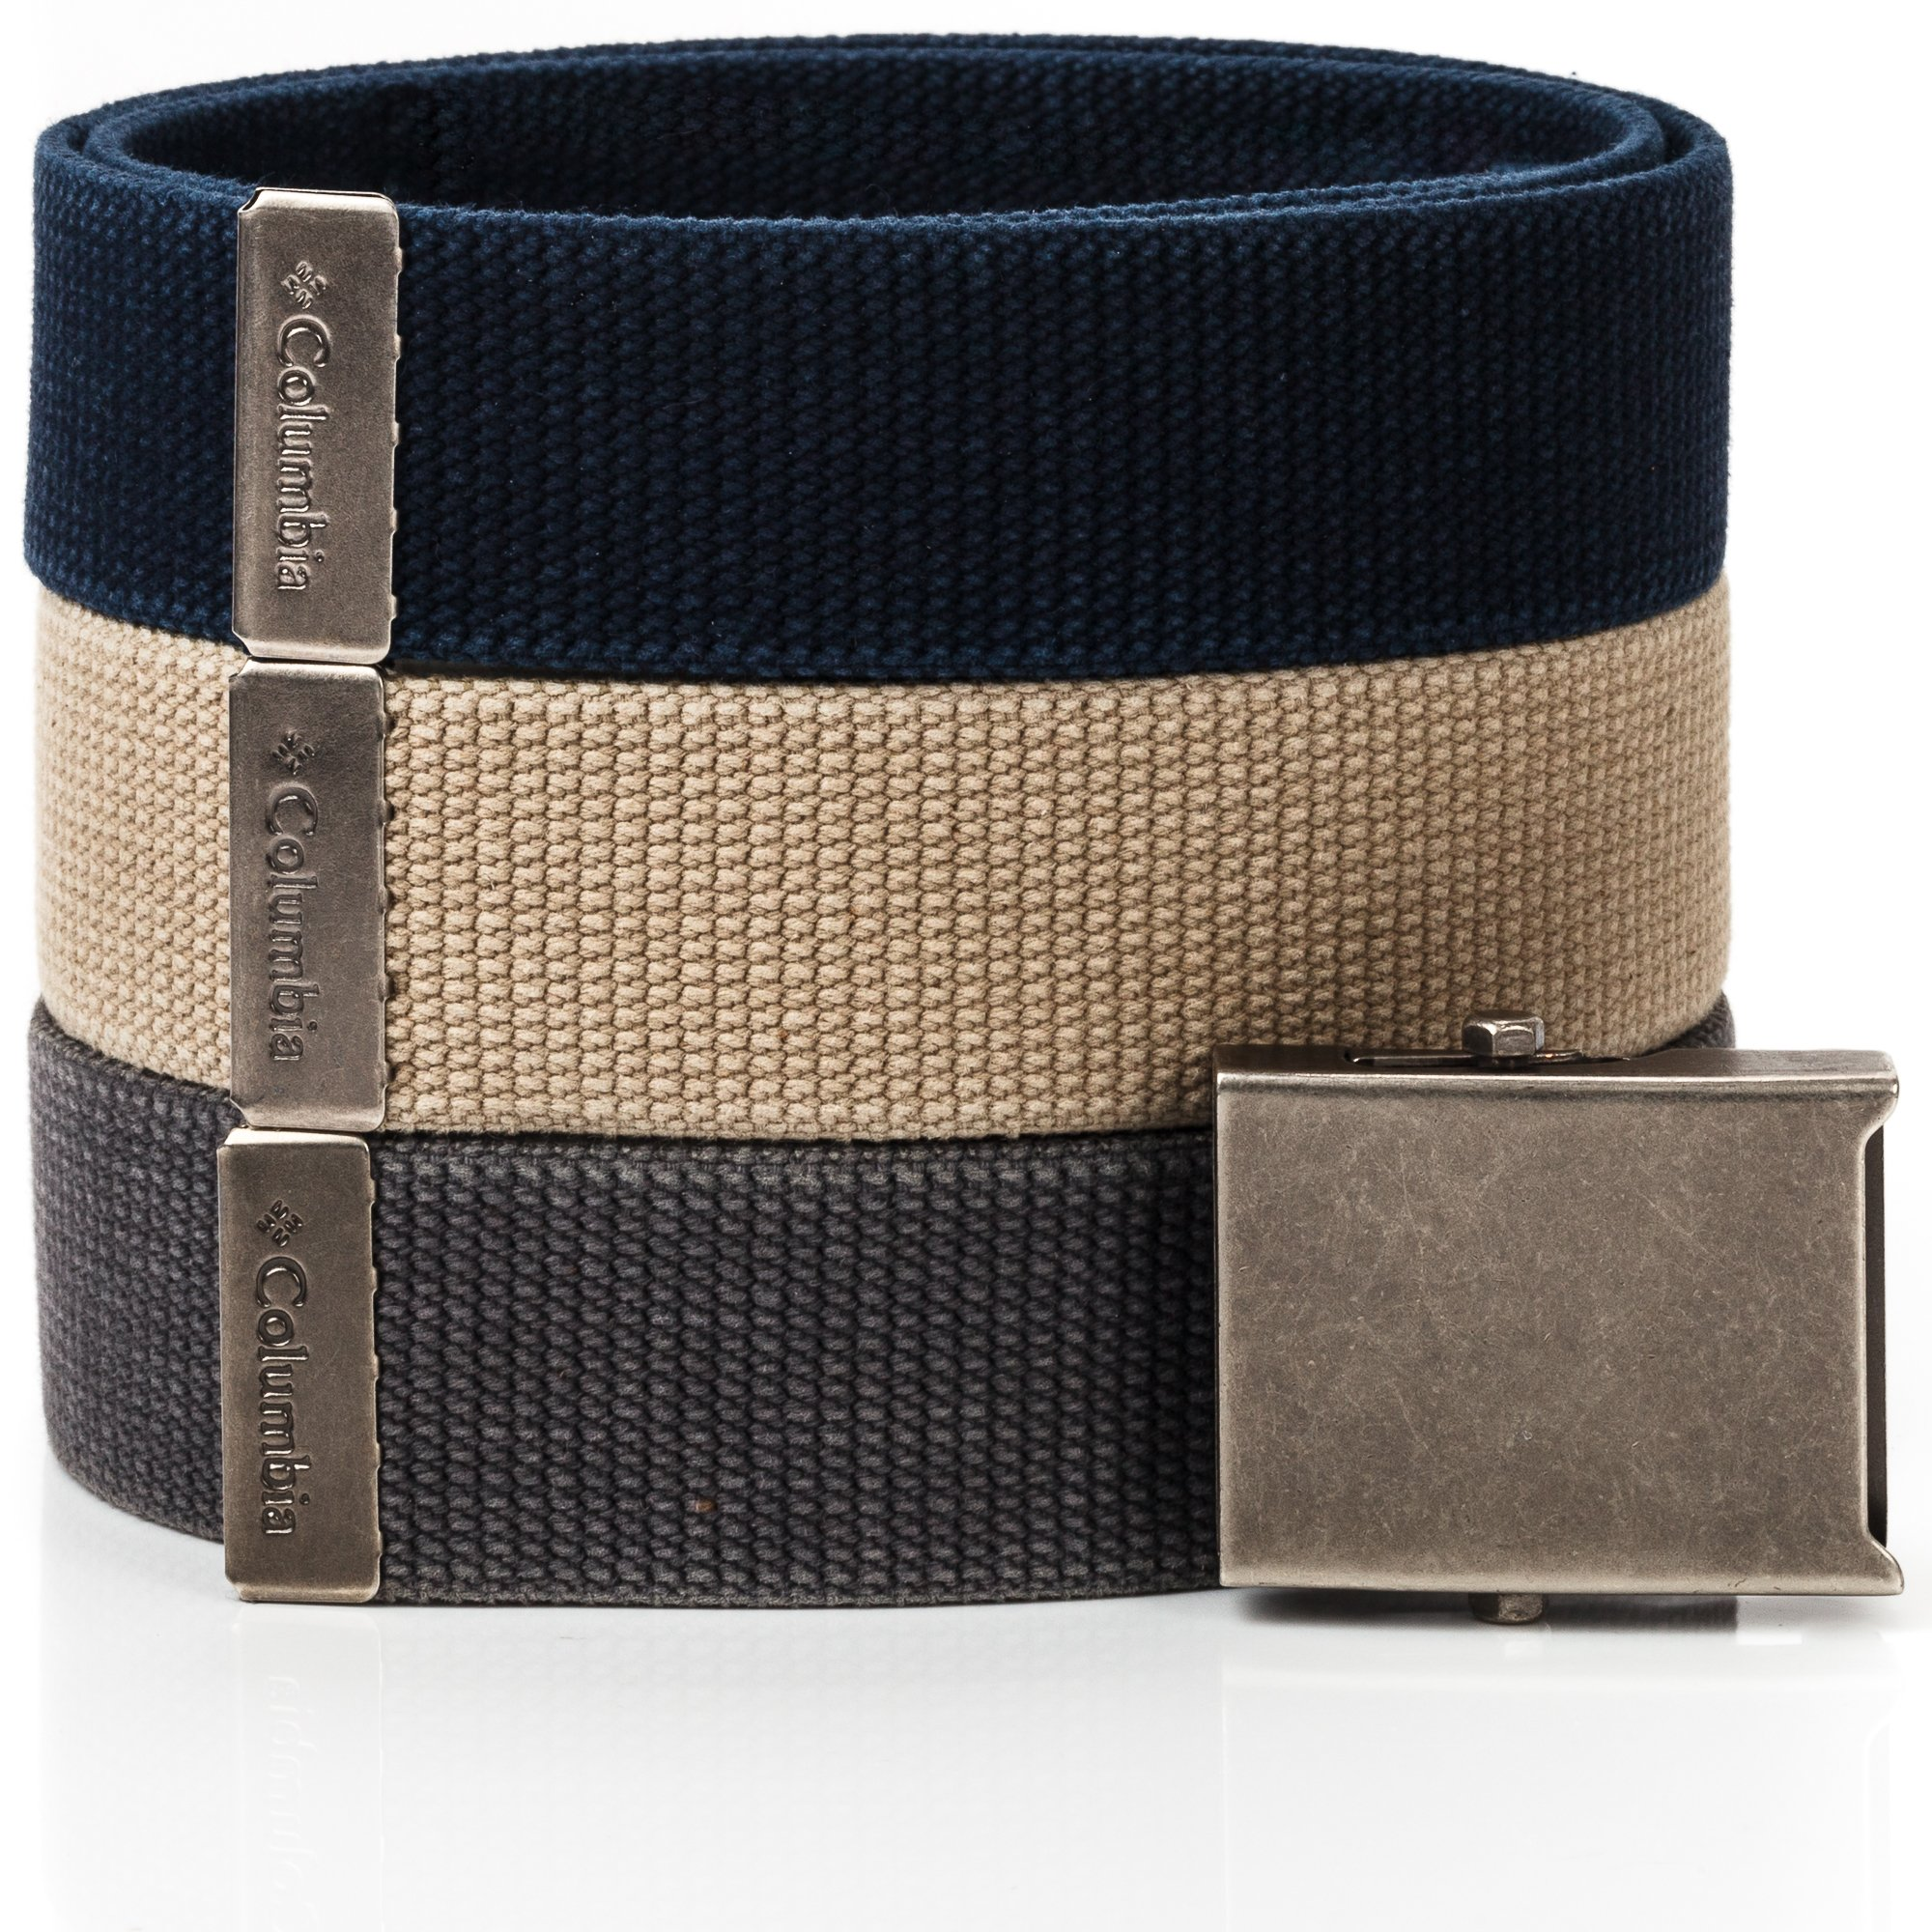 Columbia Men's Military-Style Web Belt (3 Pack),Navy/Beige/Charcoal,42